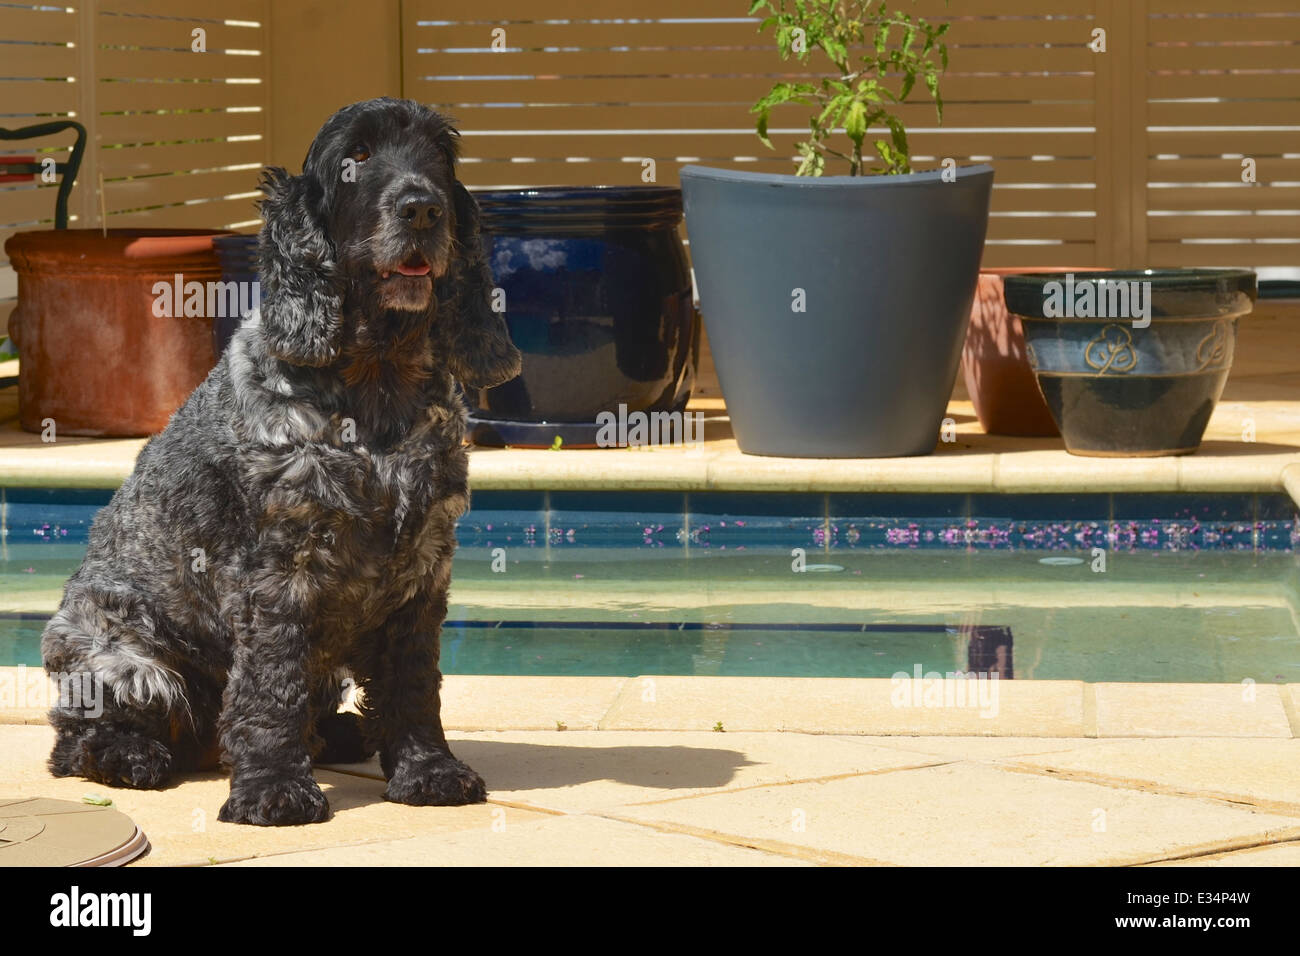 An English cocker spaniel sitting by the swimming pool - Stock Image